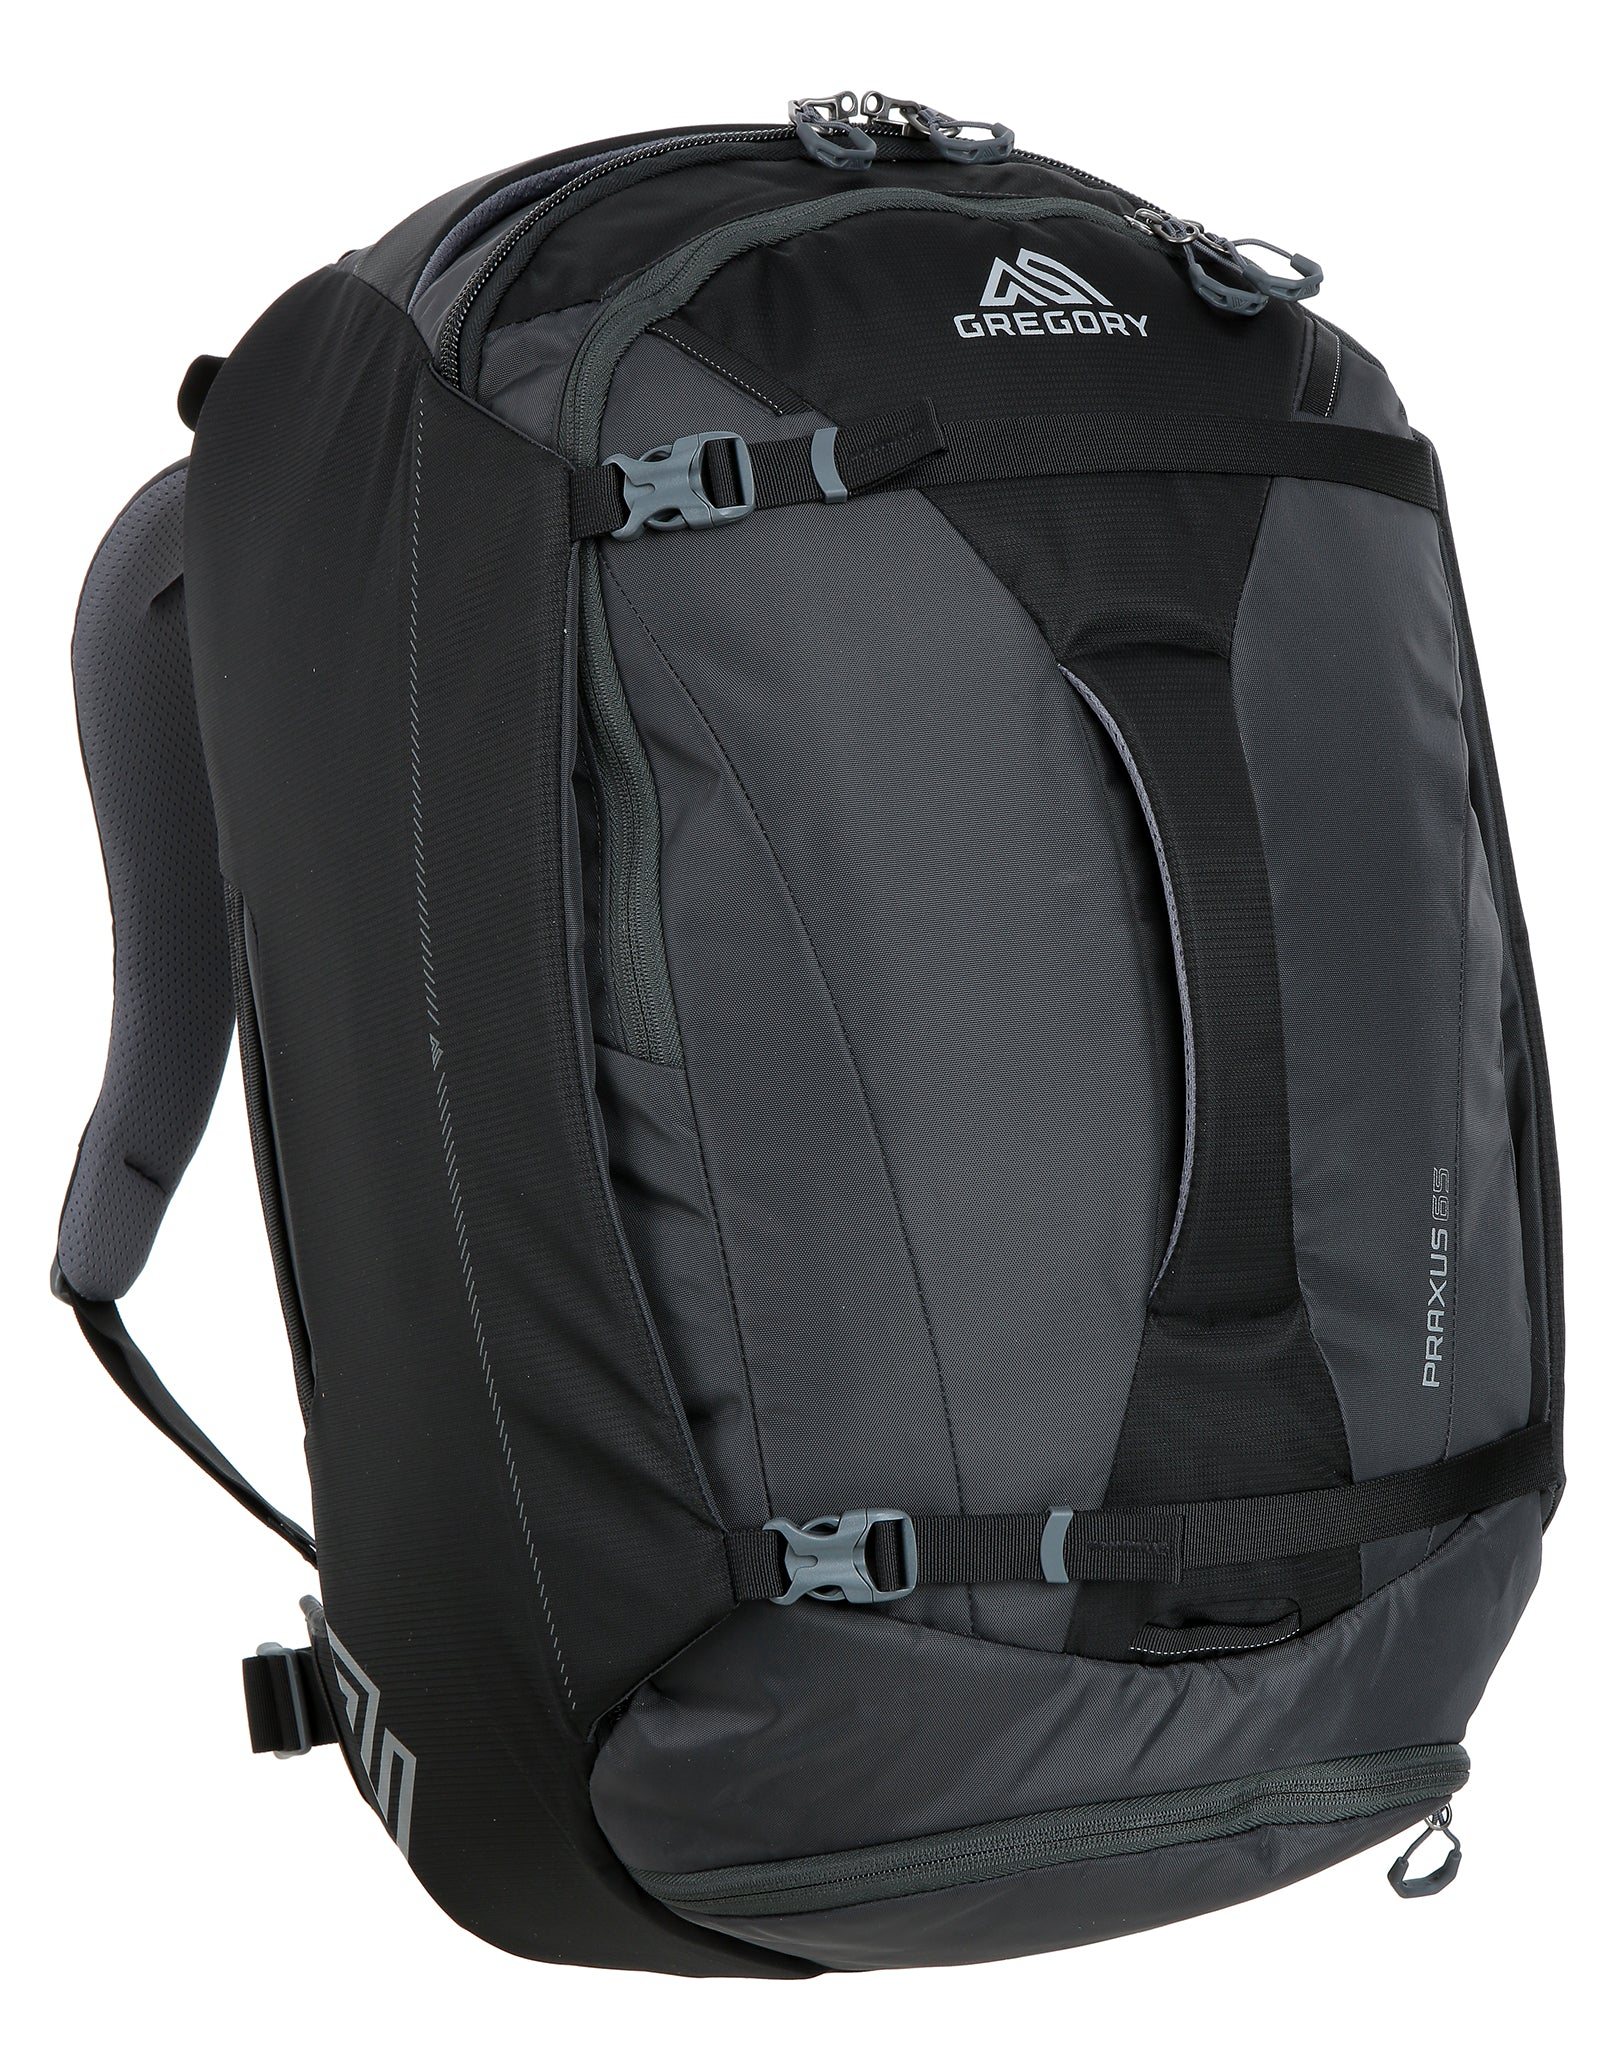 Gregory Praxus 65 Rucksack - Pixel Black   Simply Hike UK e6ac753c0c